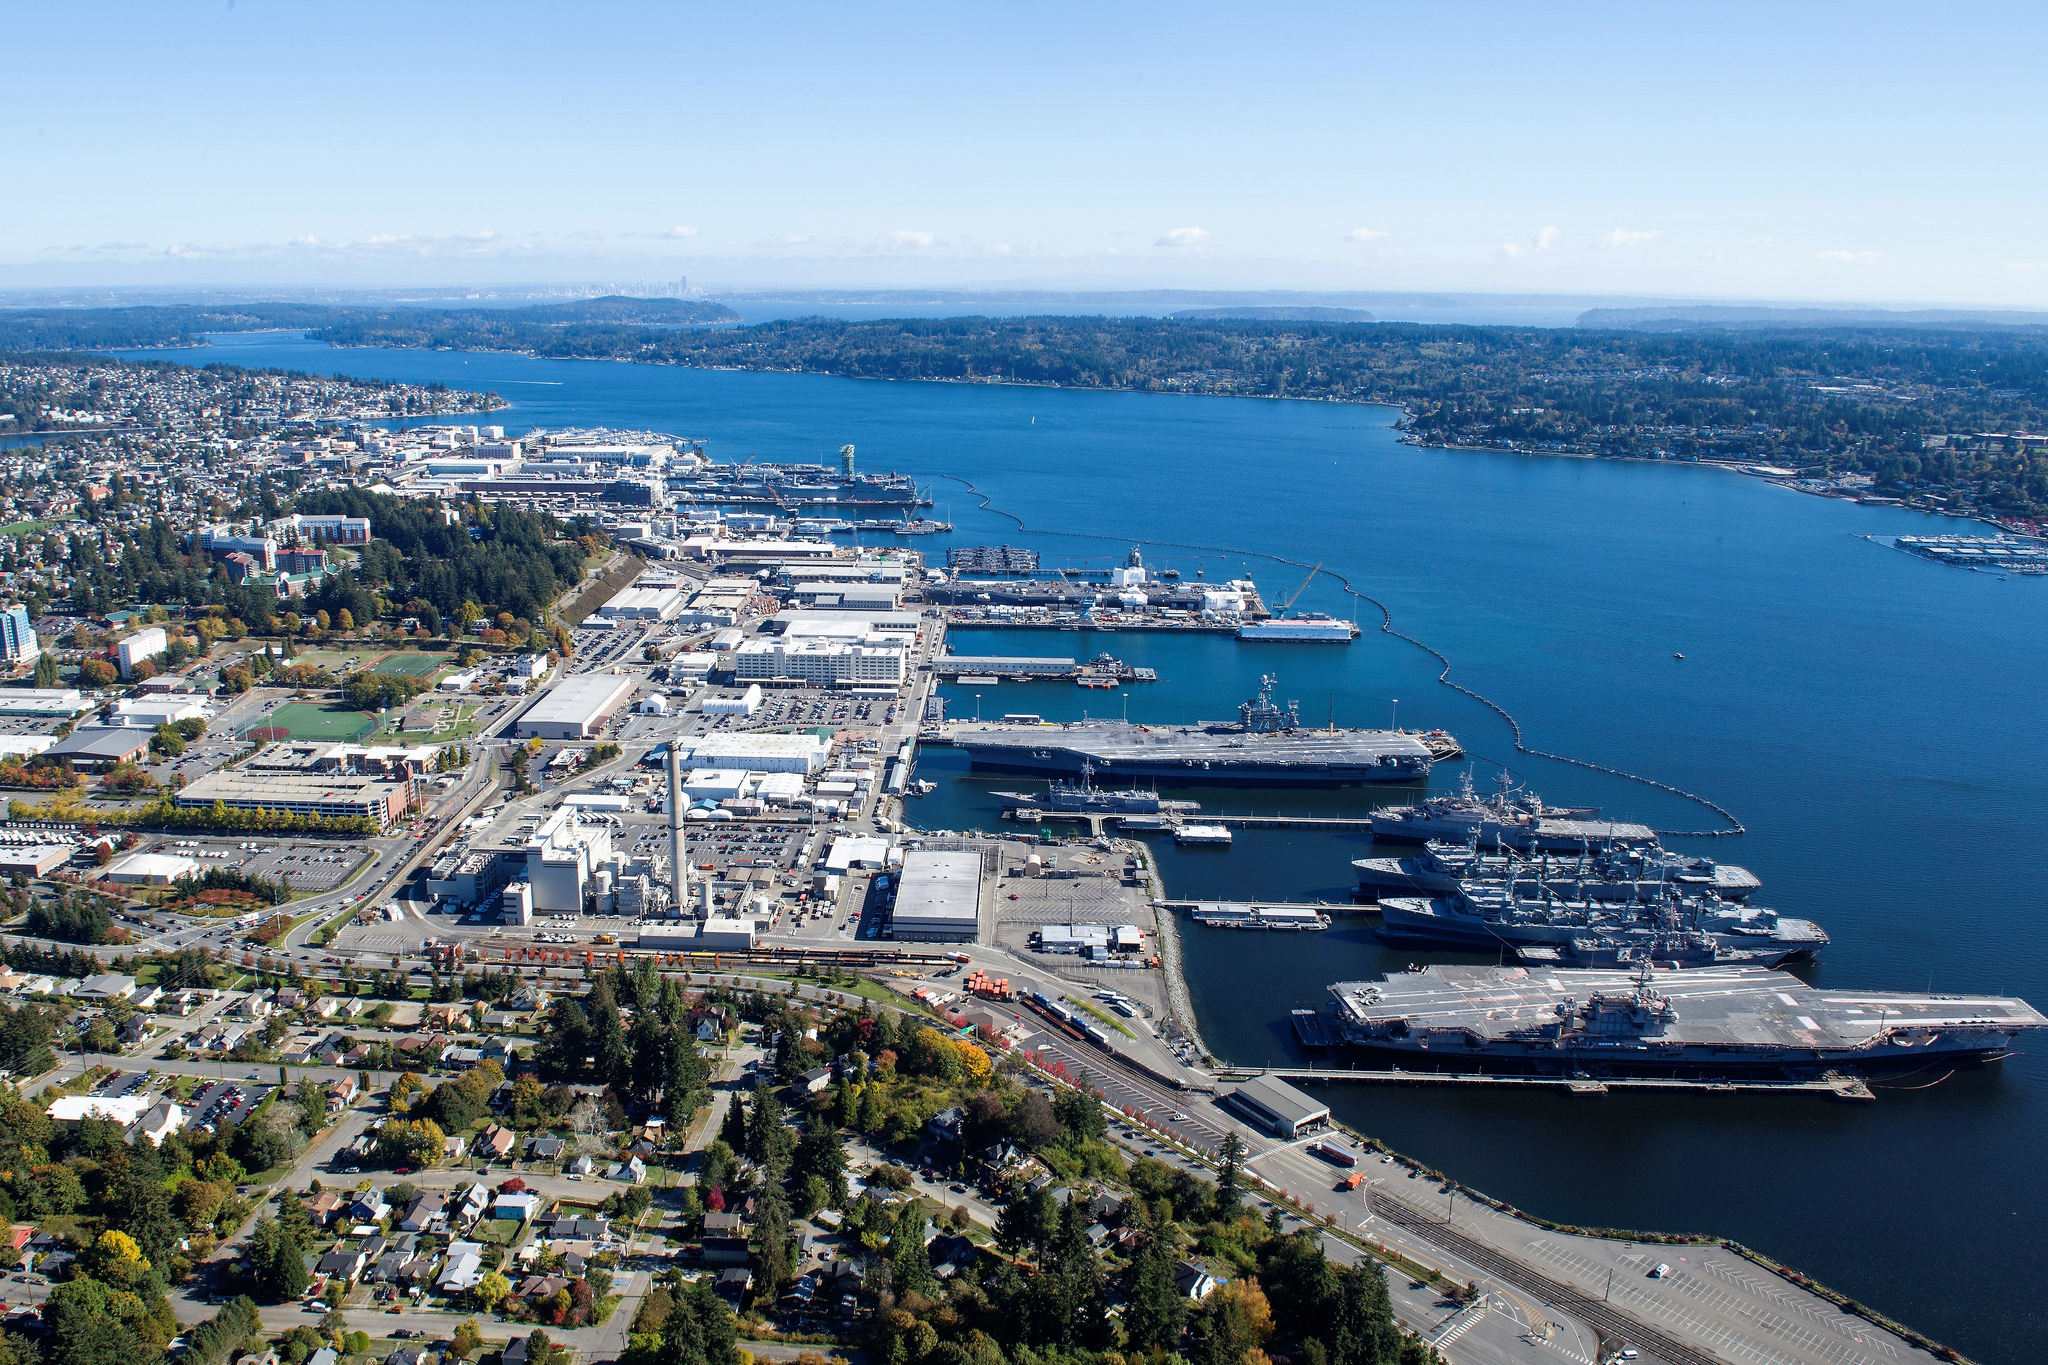 The Puget Sound Naval Shipyard is seen Oct. 13, 2018, at Naval Base Kitsap, Bremerton, Wash. (Naval Base Kitsap)